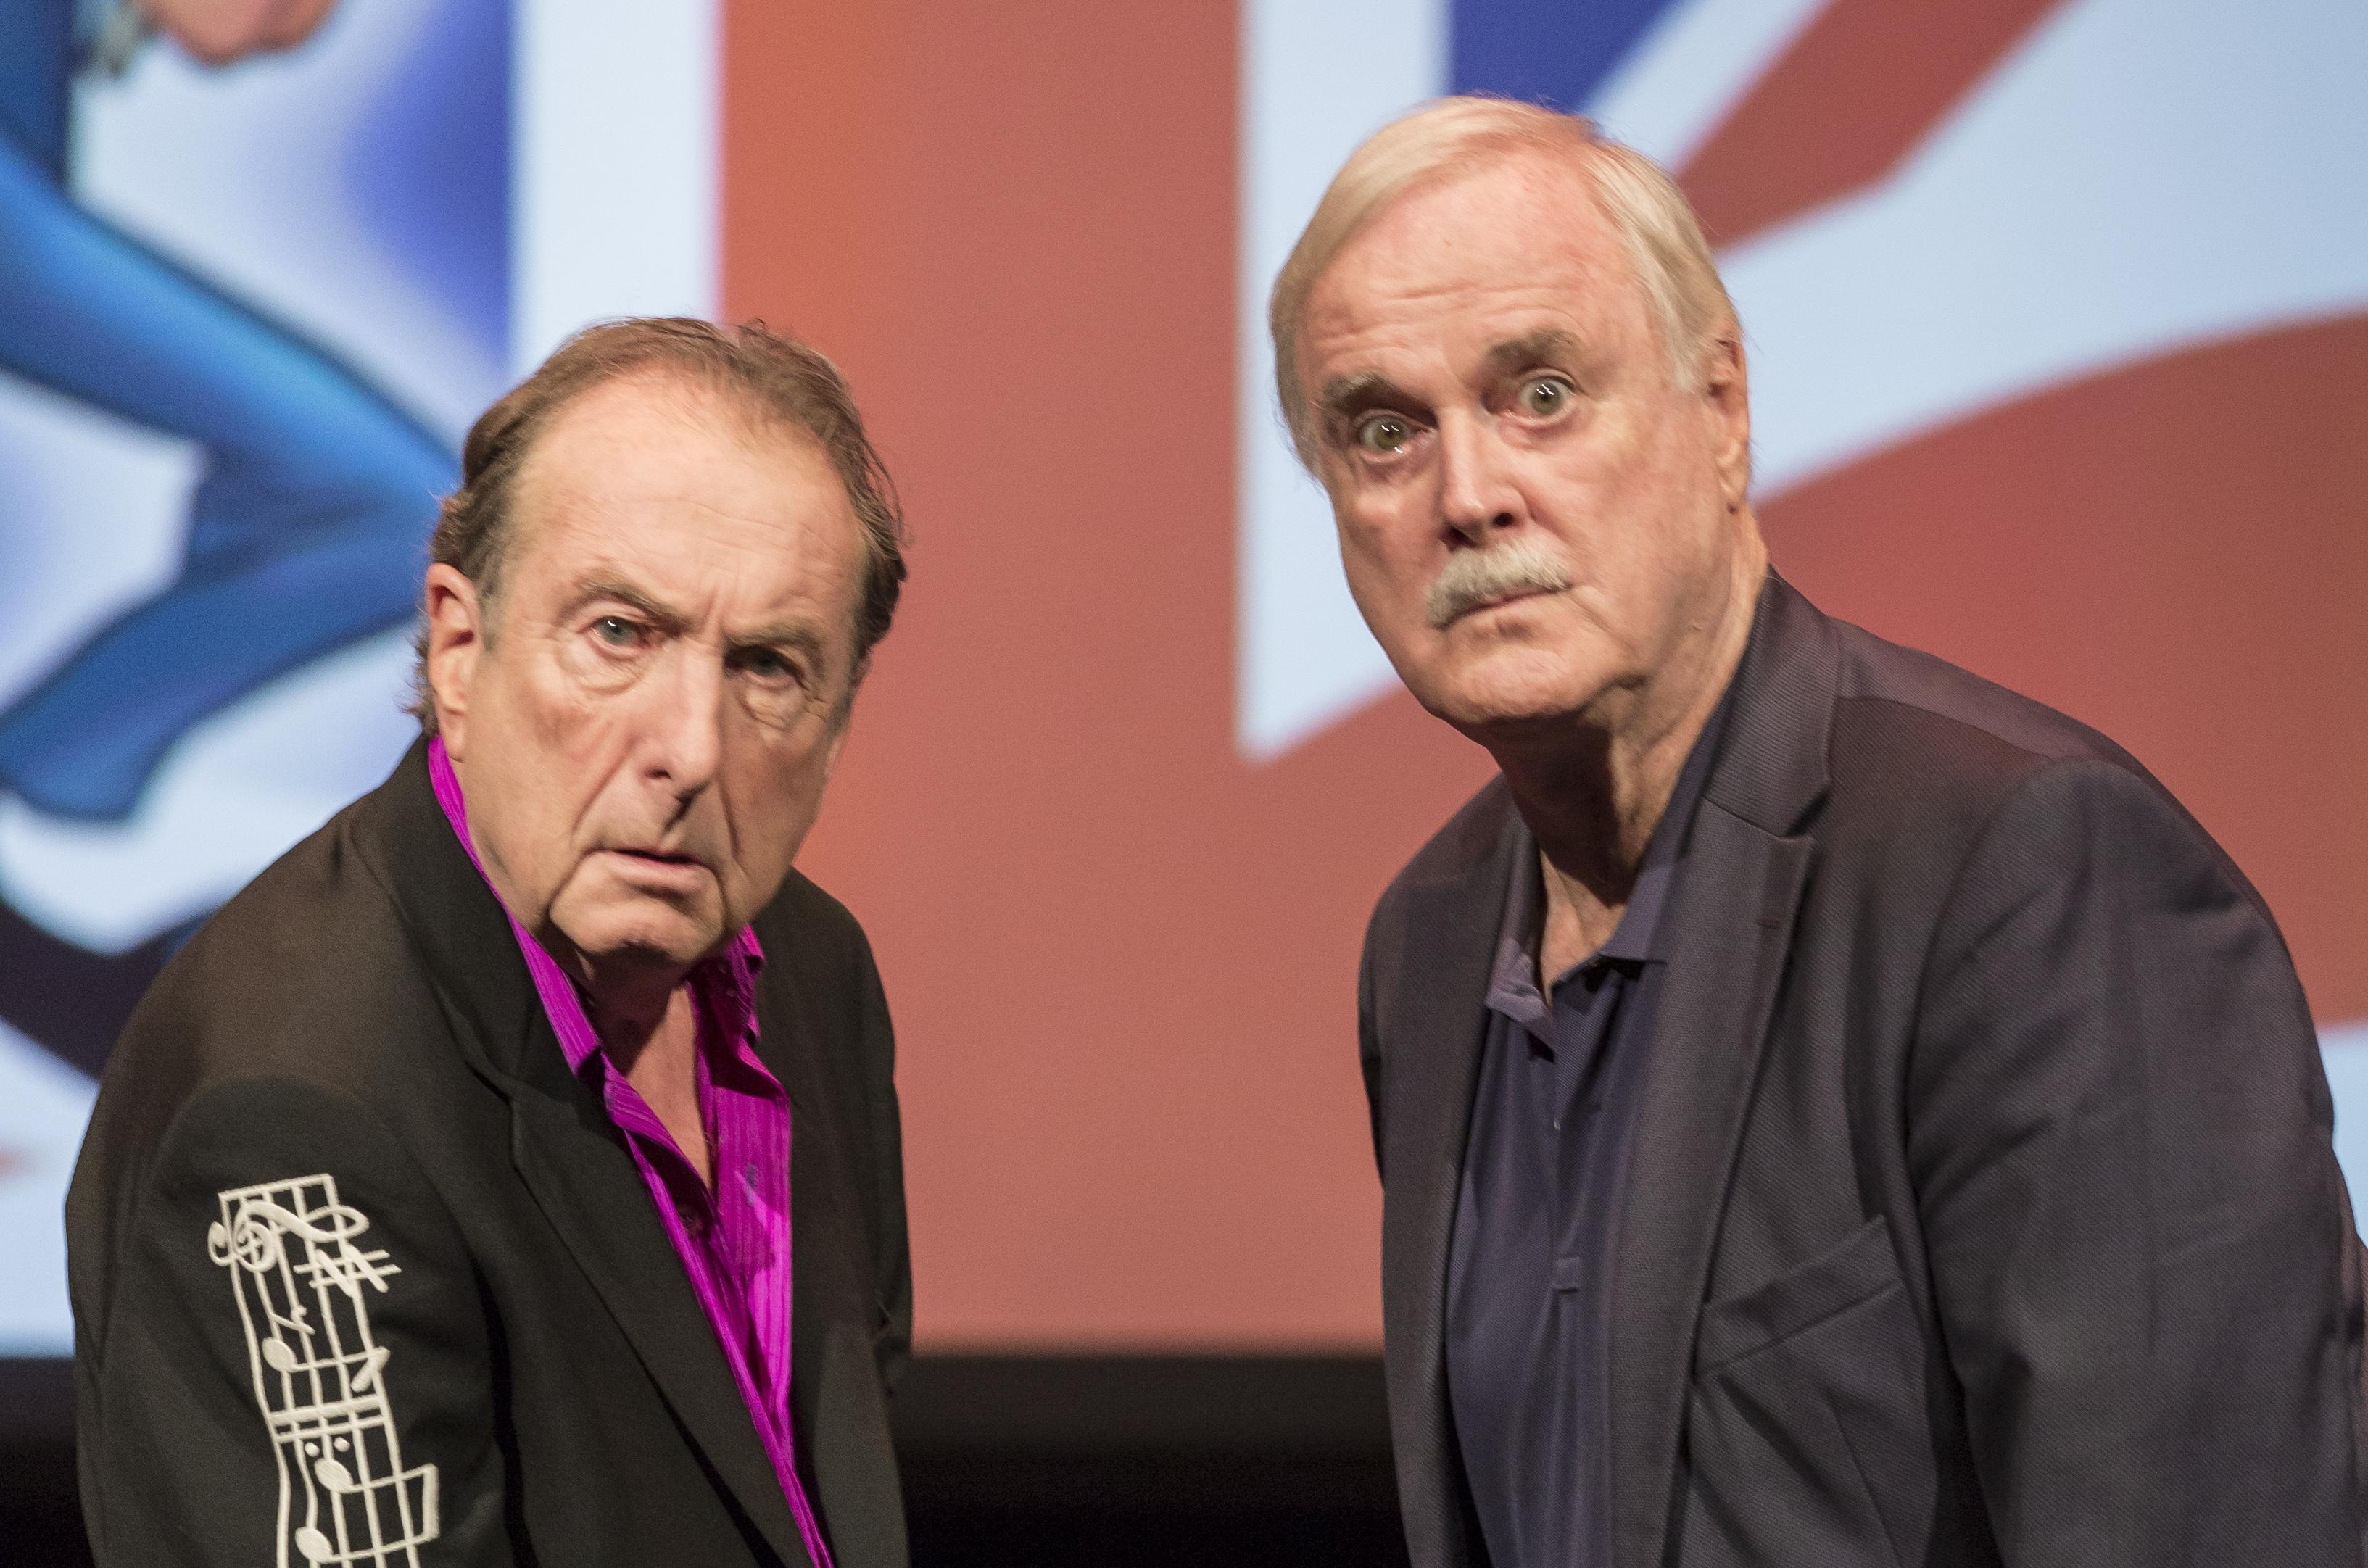 John cleese and eric idle perform in sarasota florida in 2015 the